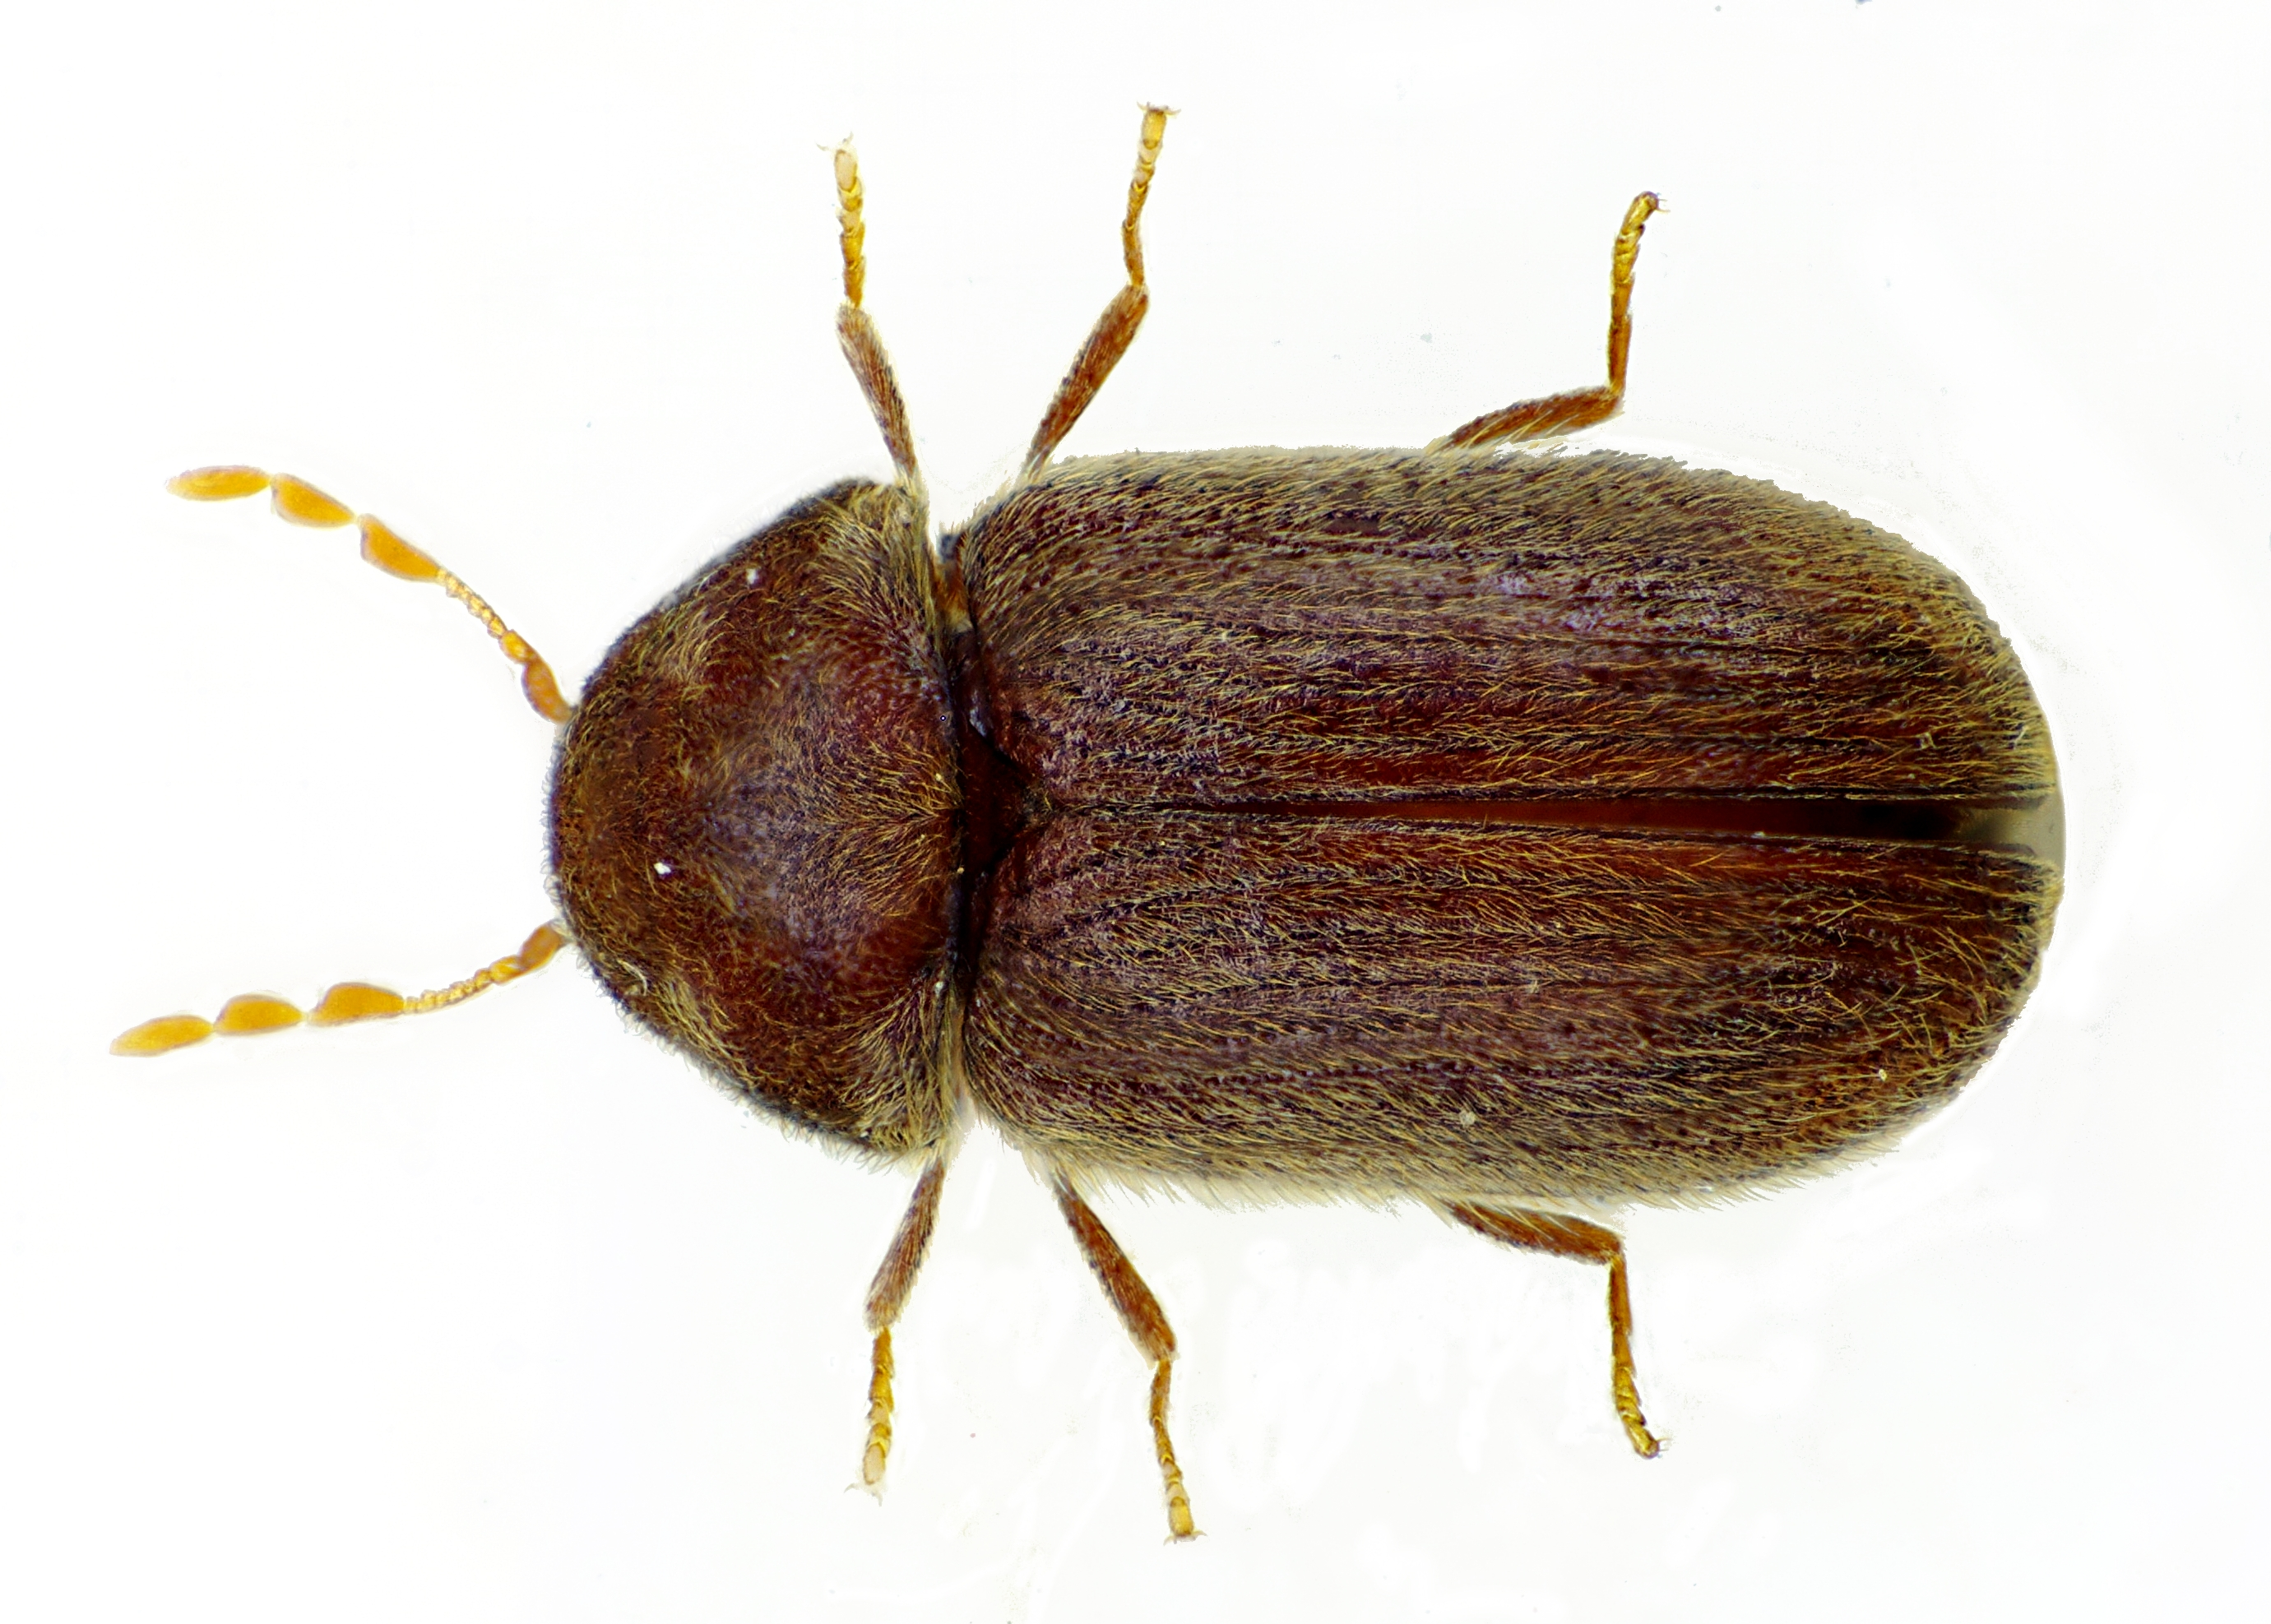 Drugstore beetle - Wikipedia